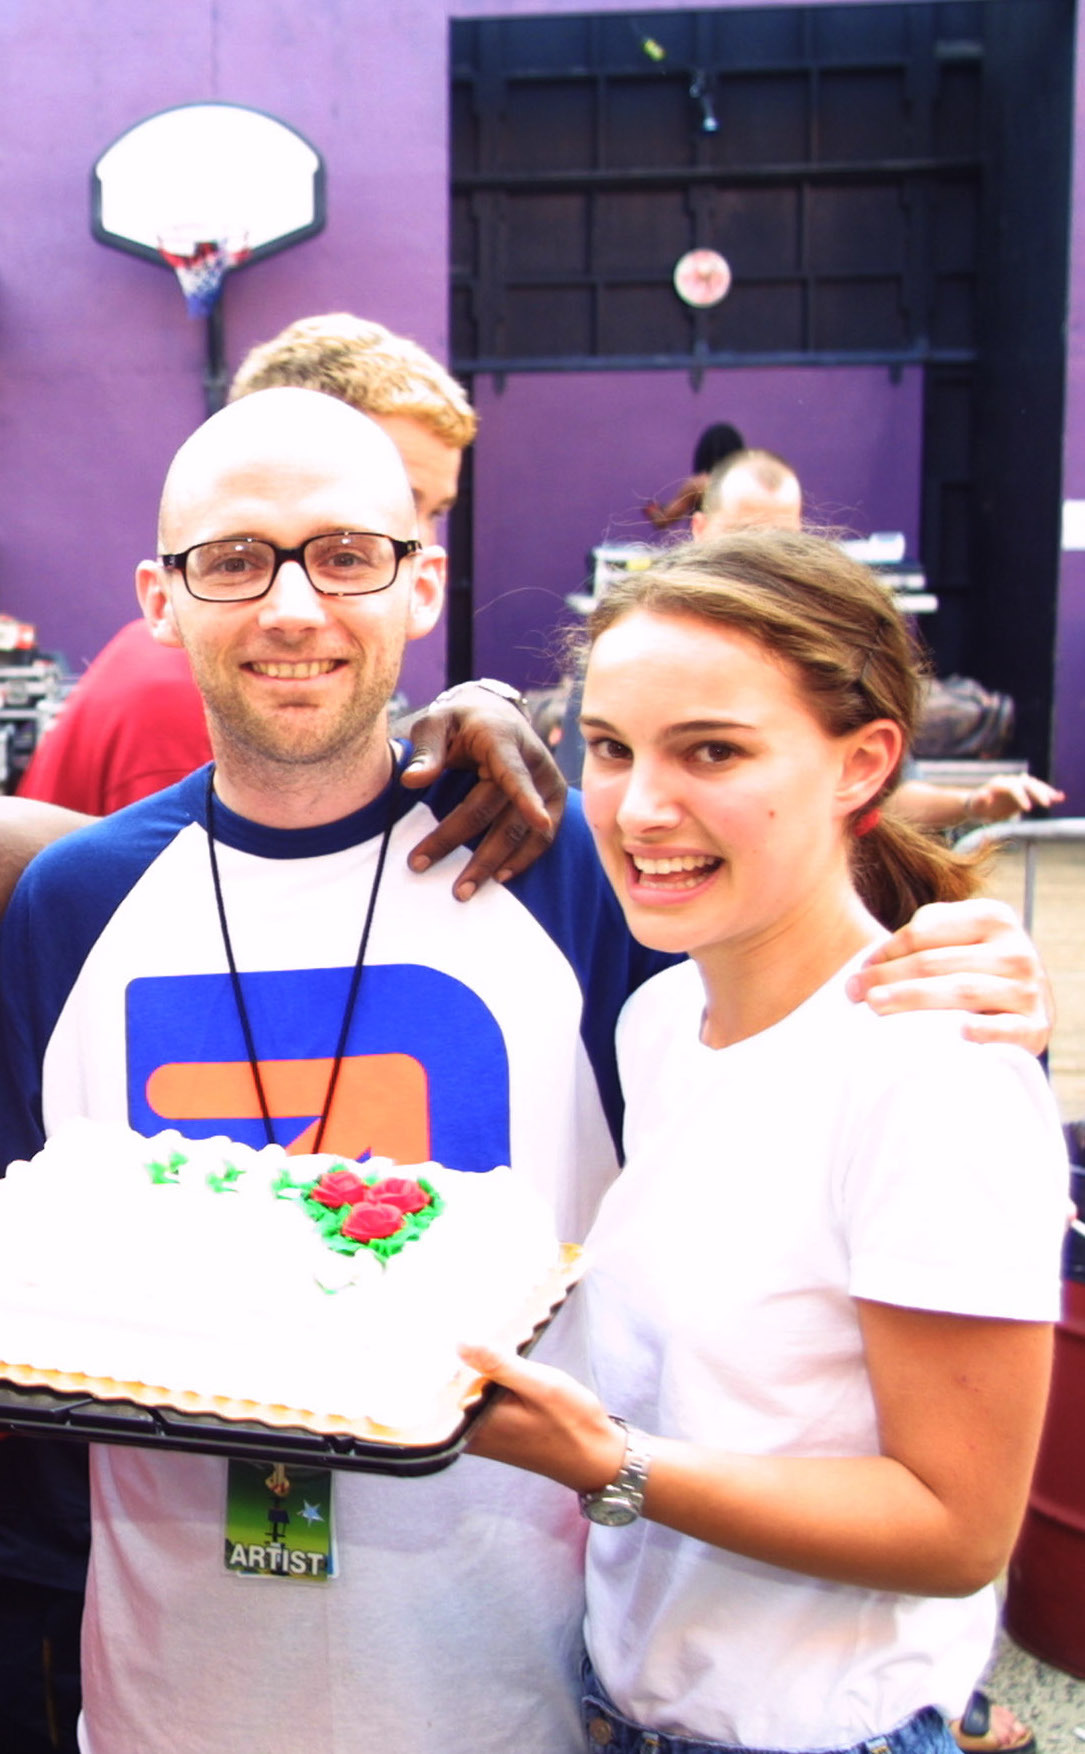 Moby and Natalie Portman attend the Area One Concert at Jones Beach in Wantagh, New York, on July 15, 2001.